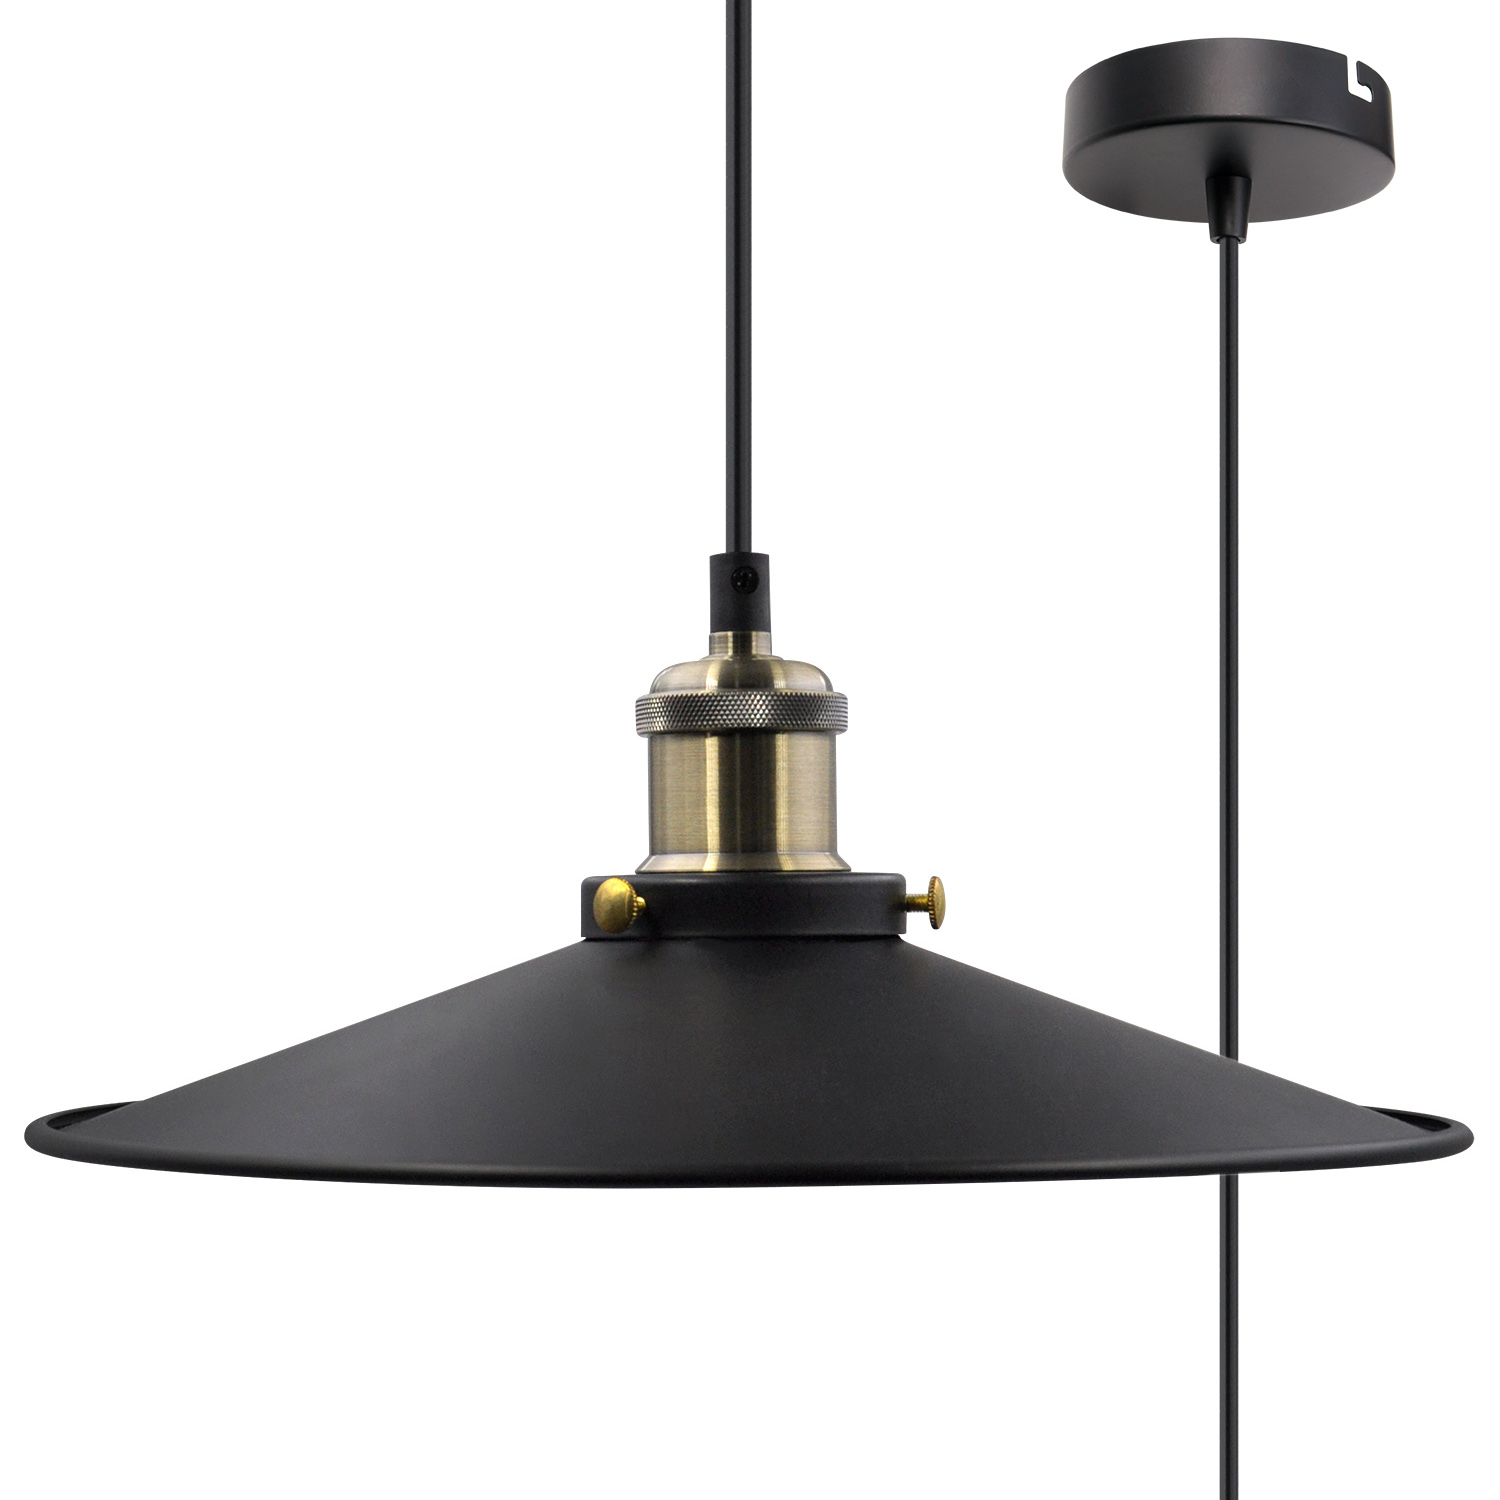 Black Pendant Light Shade Vintage Metal Ceiling Hanging Lamp Fixture For Kitchen Dining Room Restaurant Maximum 2 Meters Suspension